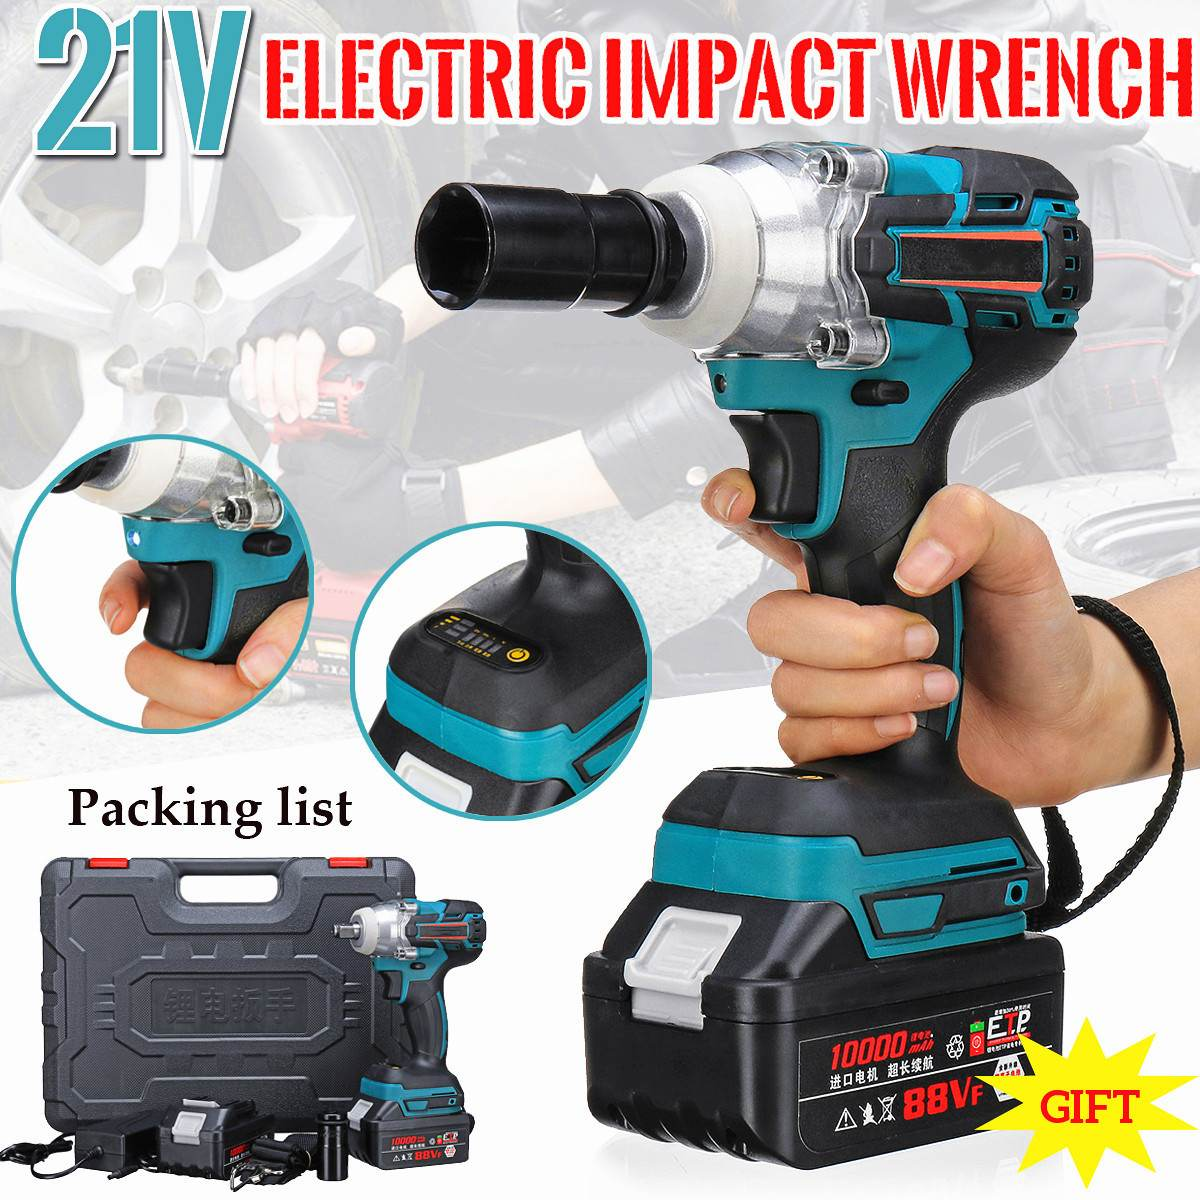 21V 10000mah Li-ion Electric Impact Wrench Guns 330Nm Max Torque Impact Wrench Cordless 2 Batteries 1 Charger Power Tool